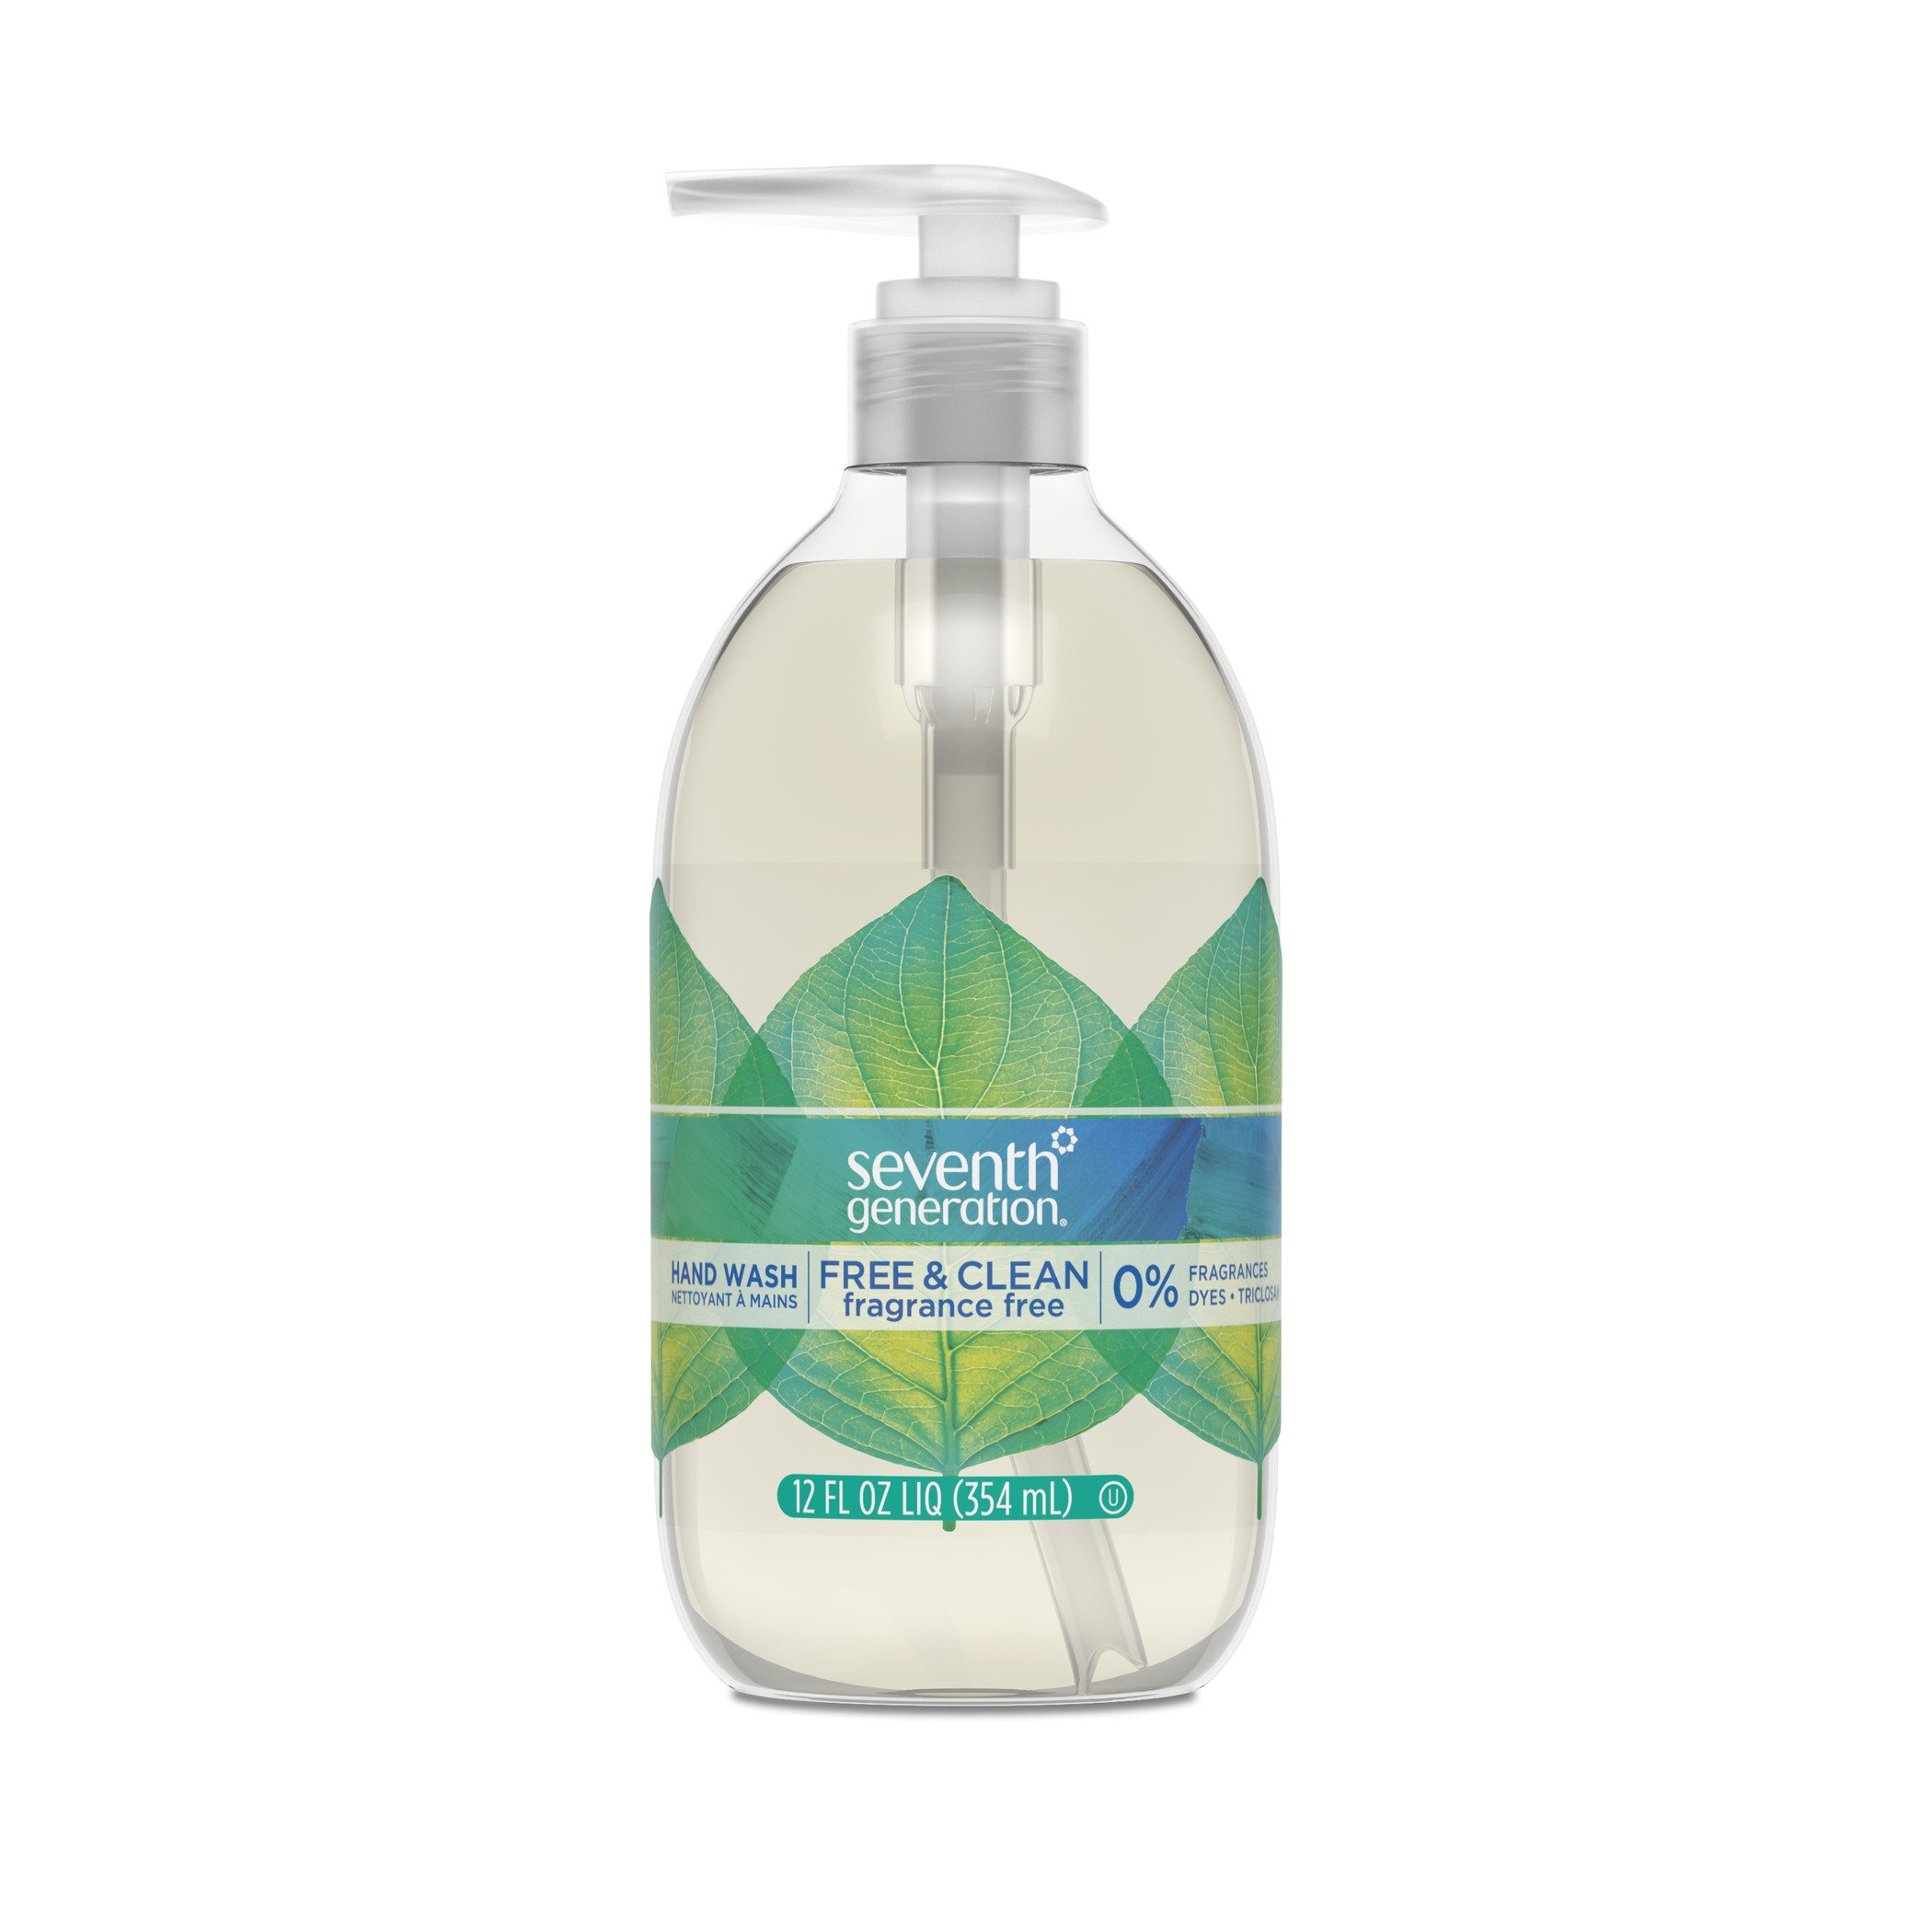 Seventh Generation Hand Wash Soap, Free & Clean Unscented, 12 Fl Oz, (Pack of 8) (Pack May Vary)